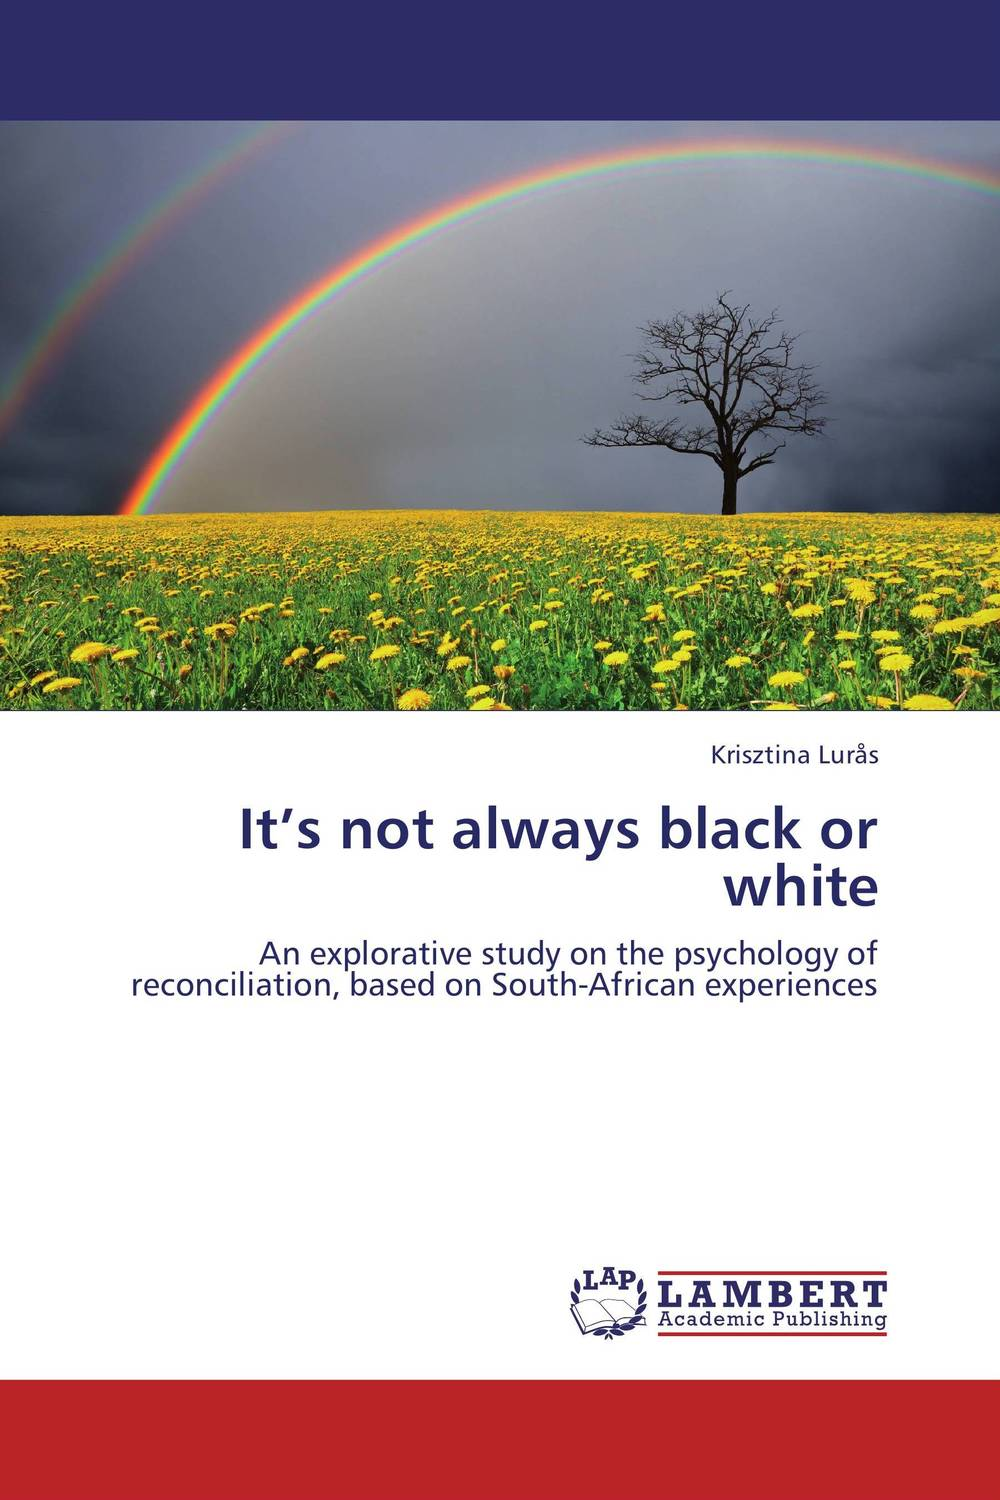 It's not always black or white an appraisal of the role of amnesty as a tool for reconciliation